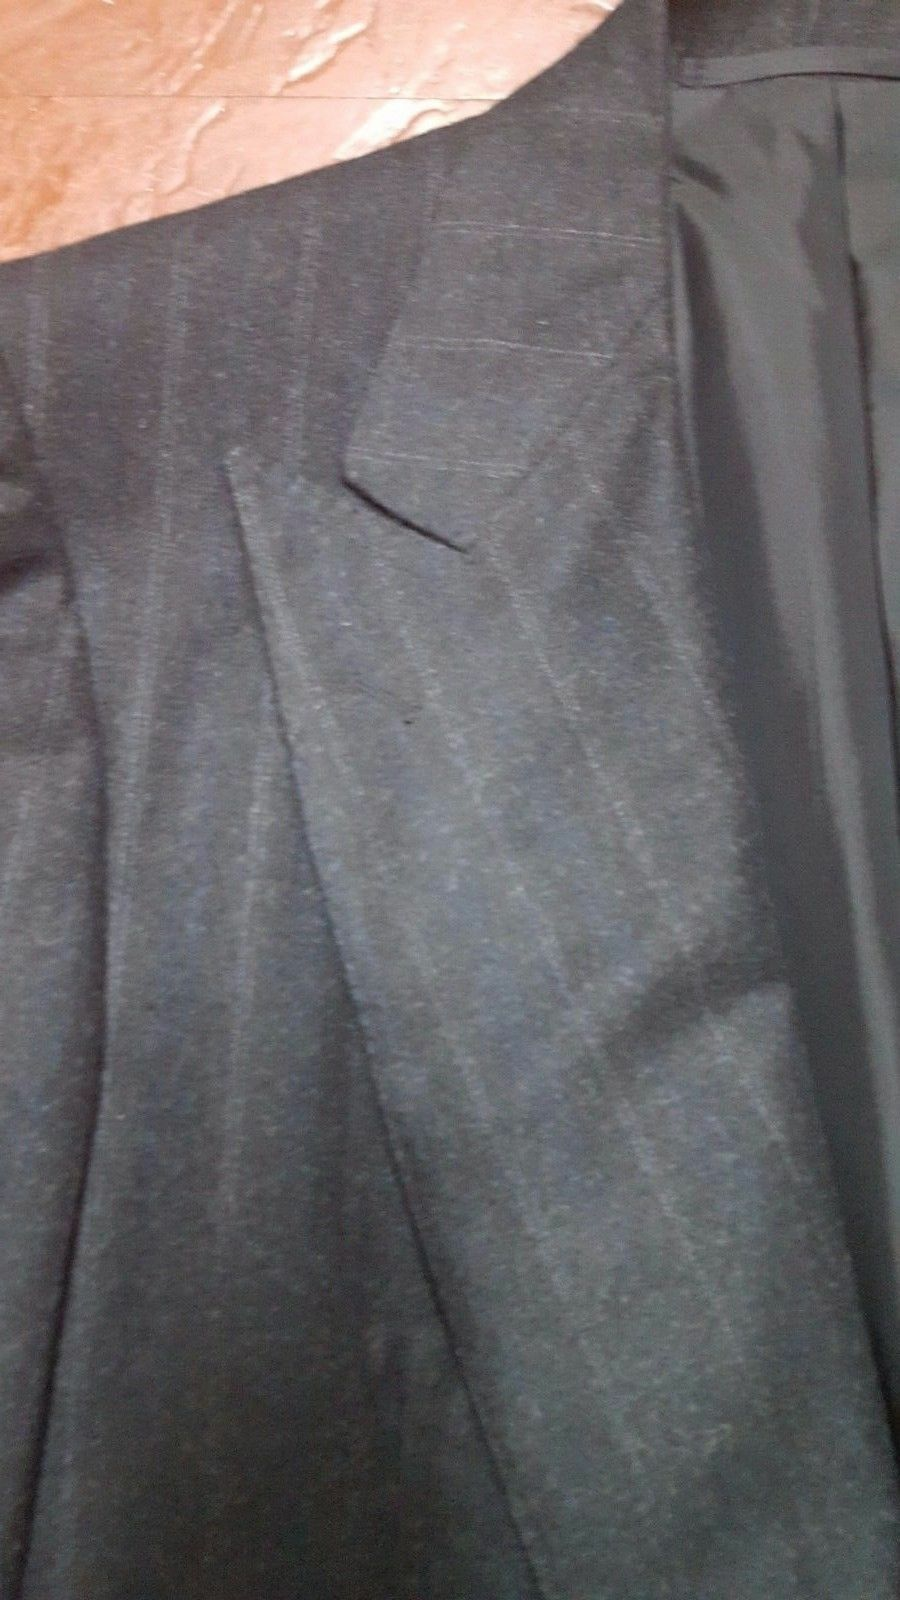 NWT  MP MASSIMO PIOMBO MADE BY KITON MOHAIR FLANNEL 40 SUIT STRIPED